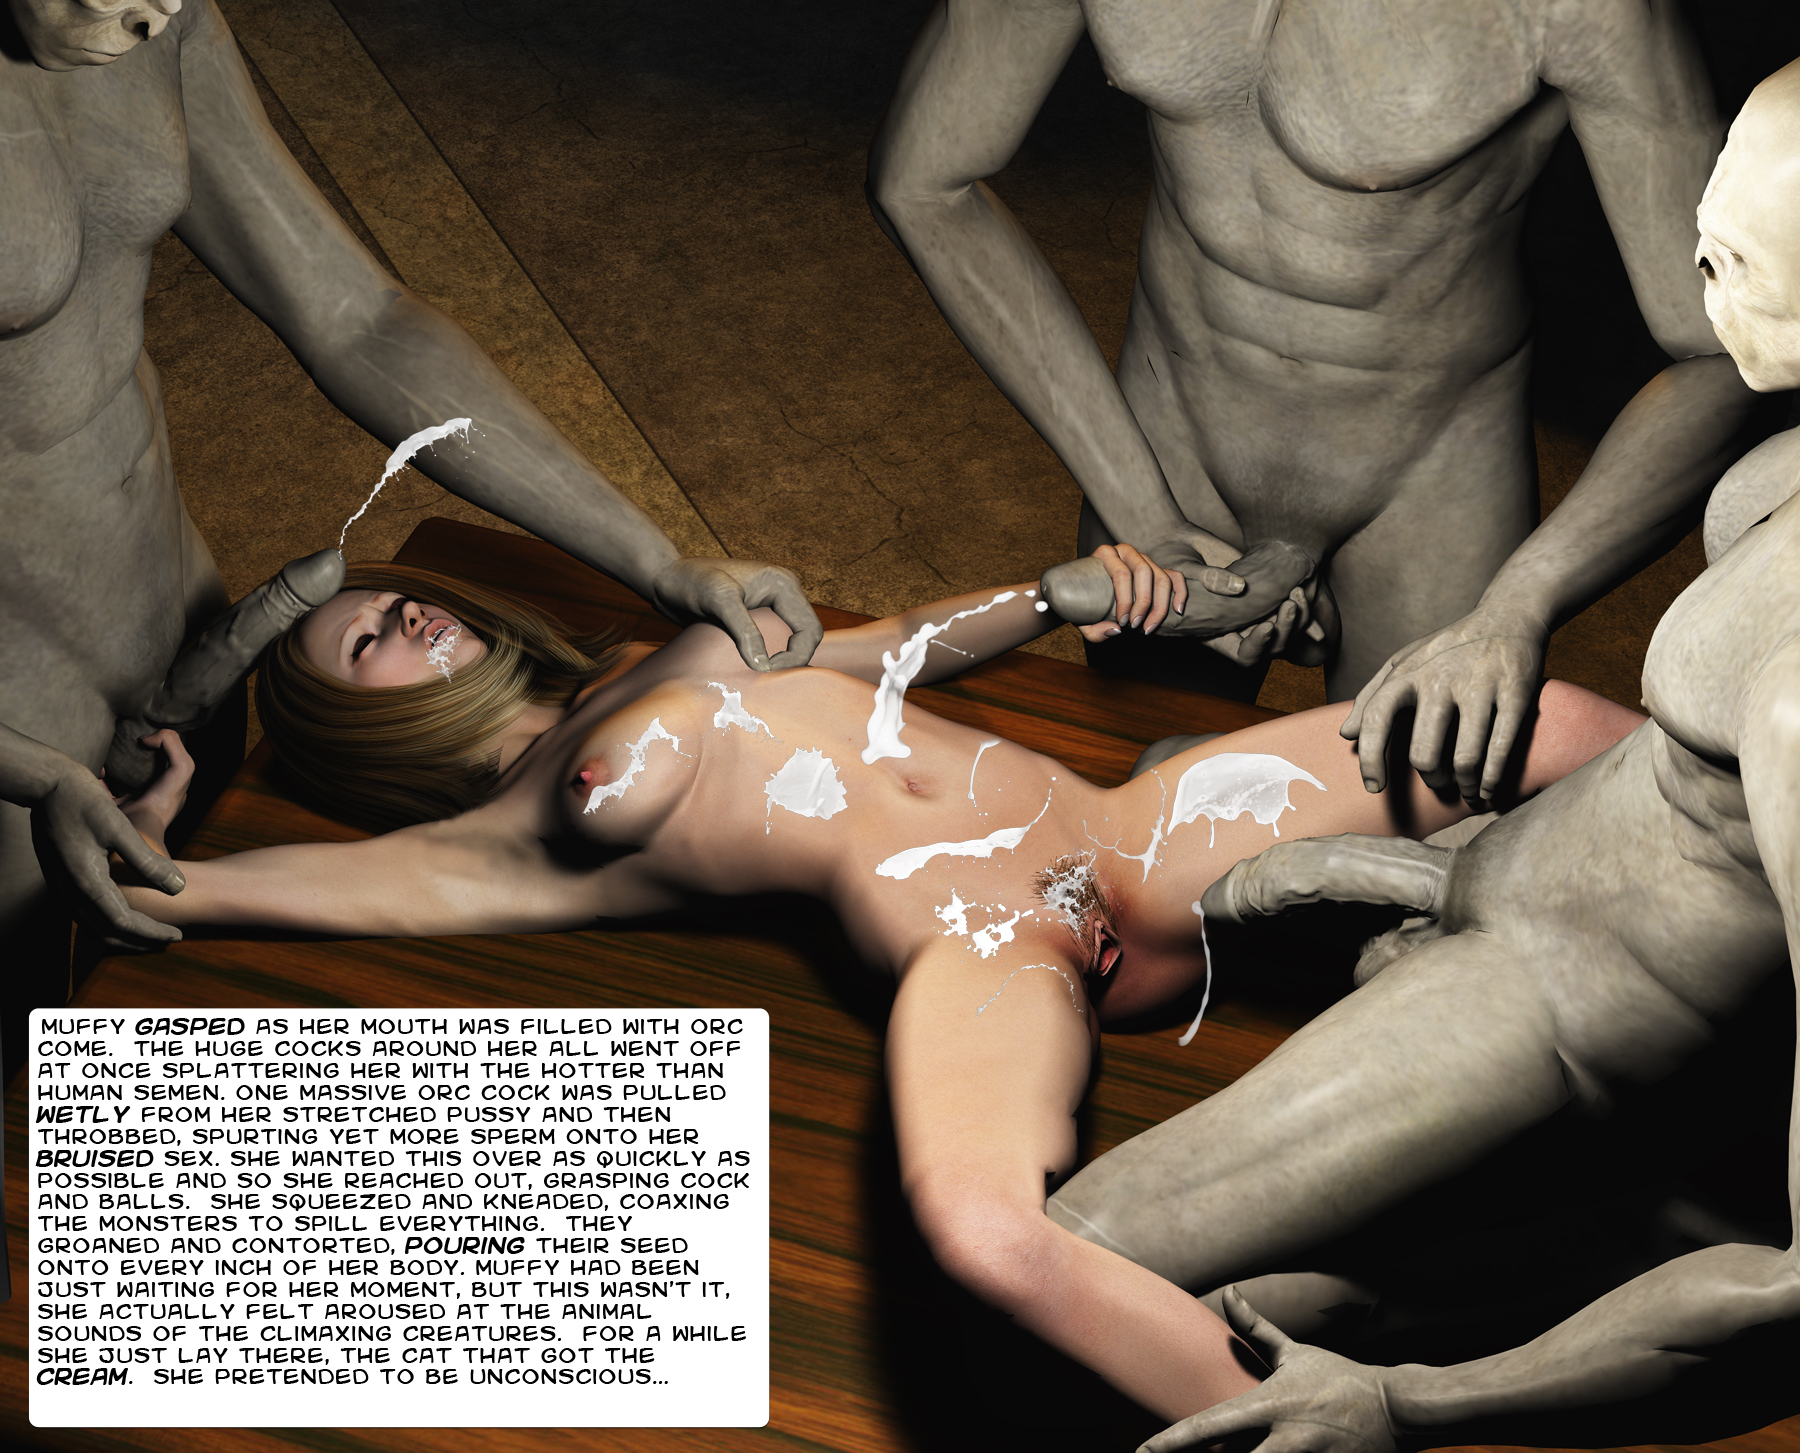 Dnld monster 3d porn vedio hd exploited scenes